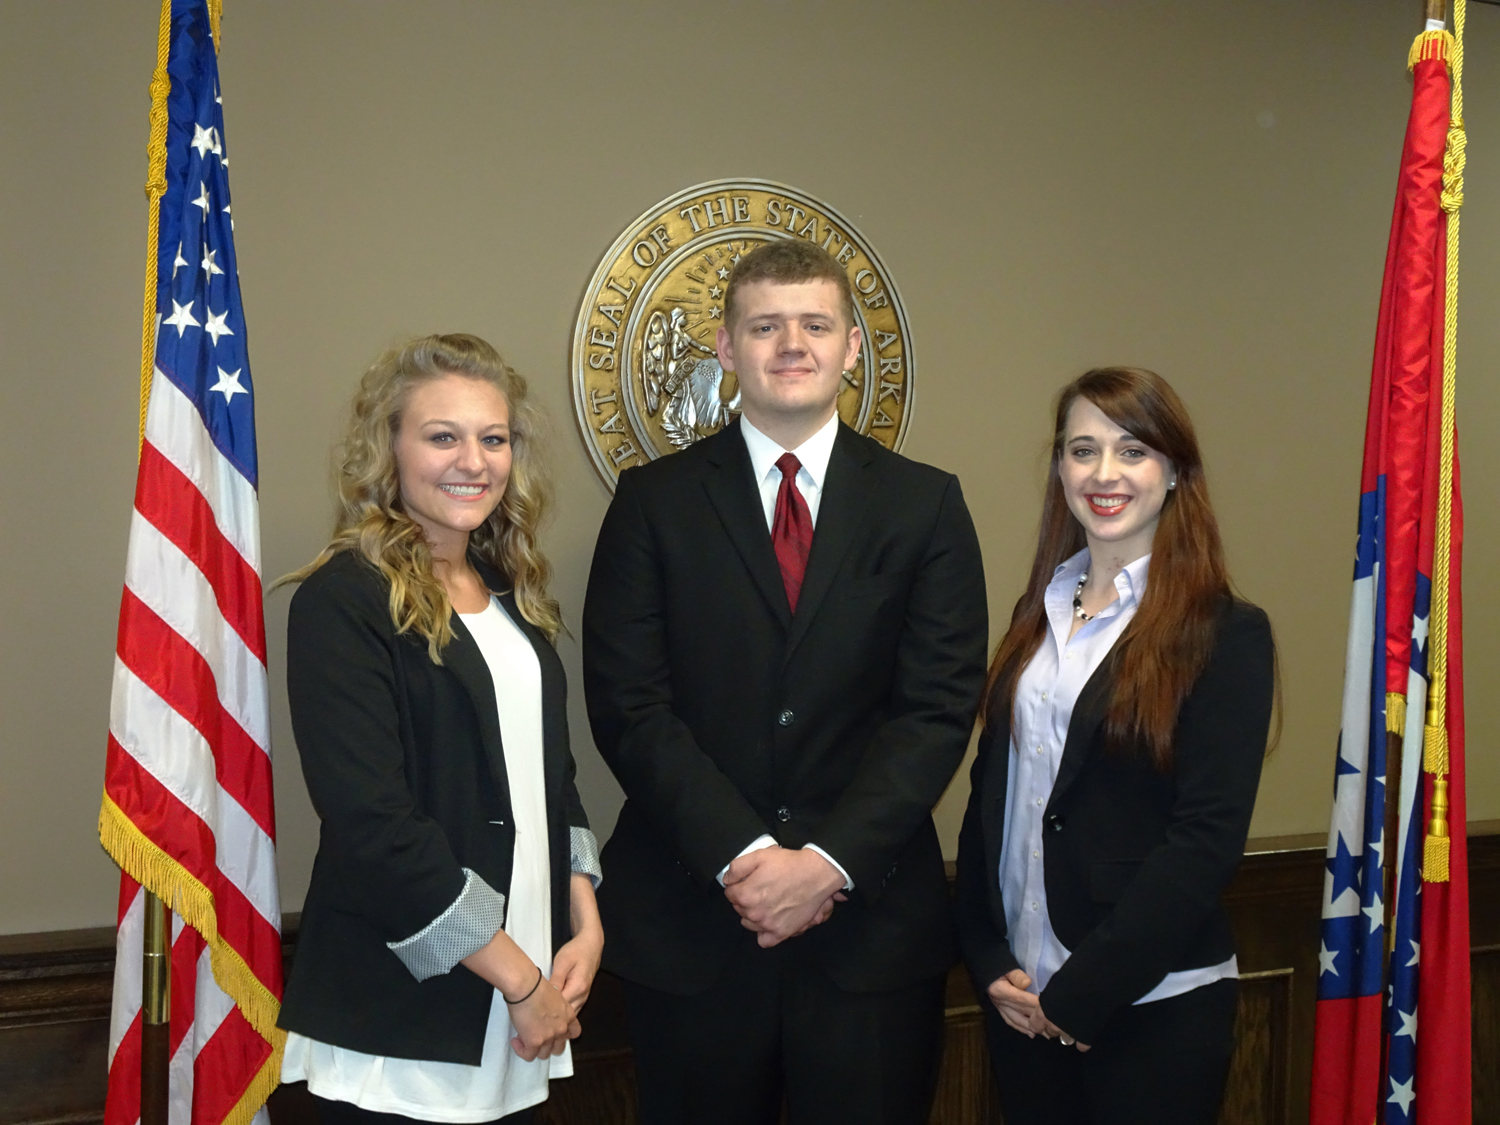 Group photo of the three interns at the Attorney General's office.